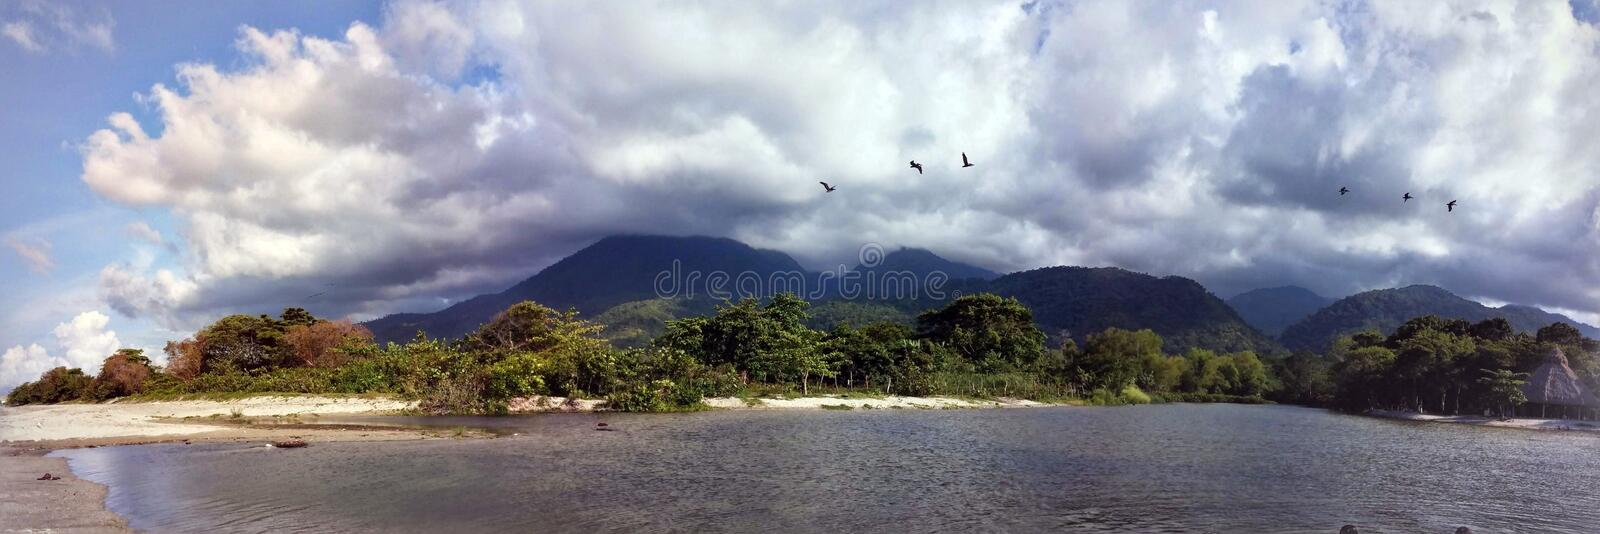 Sea fotos de stock royalty free